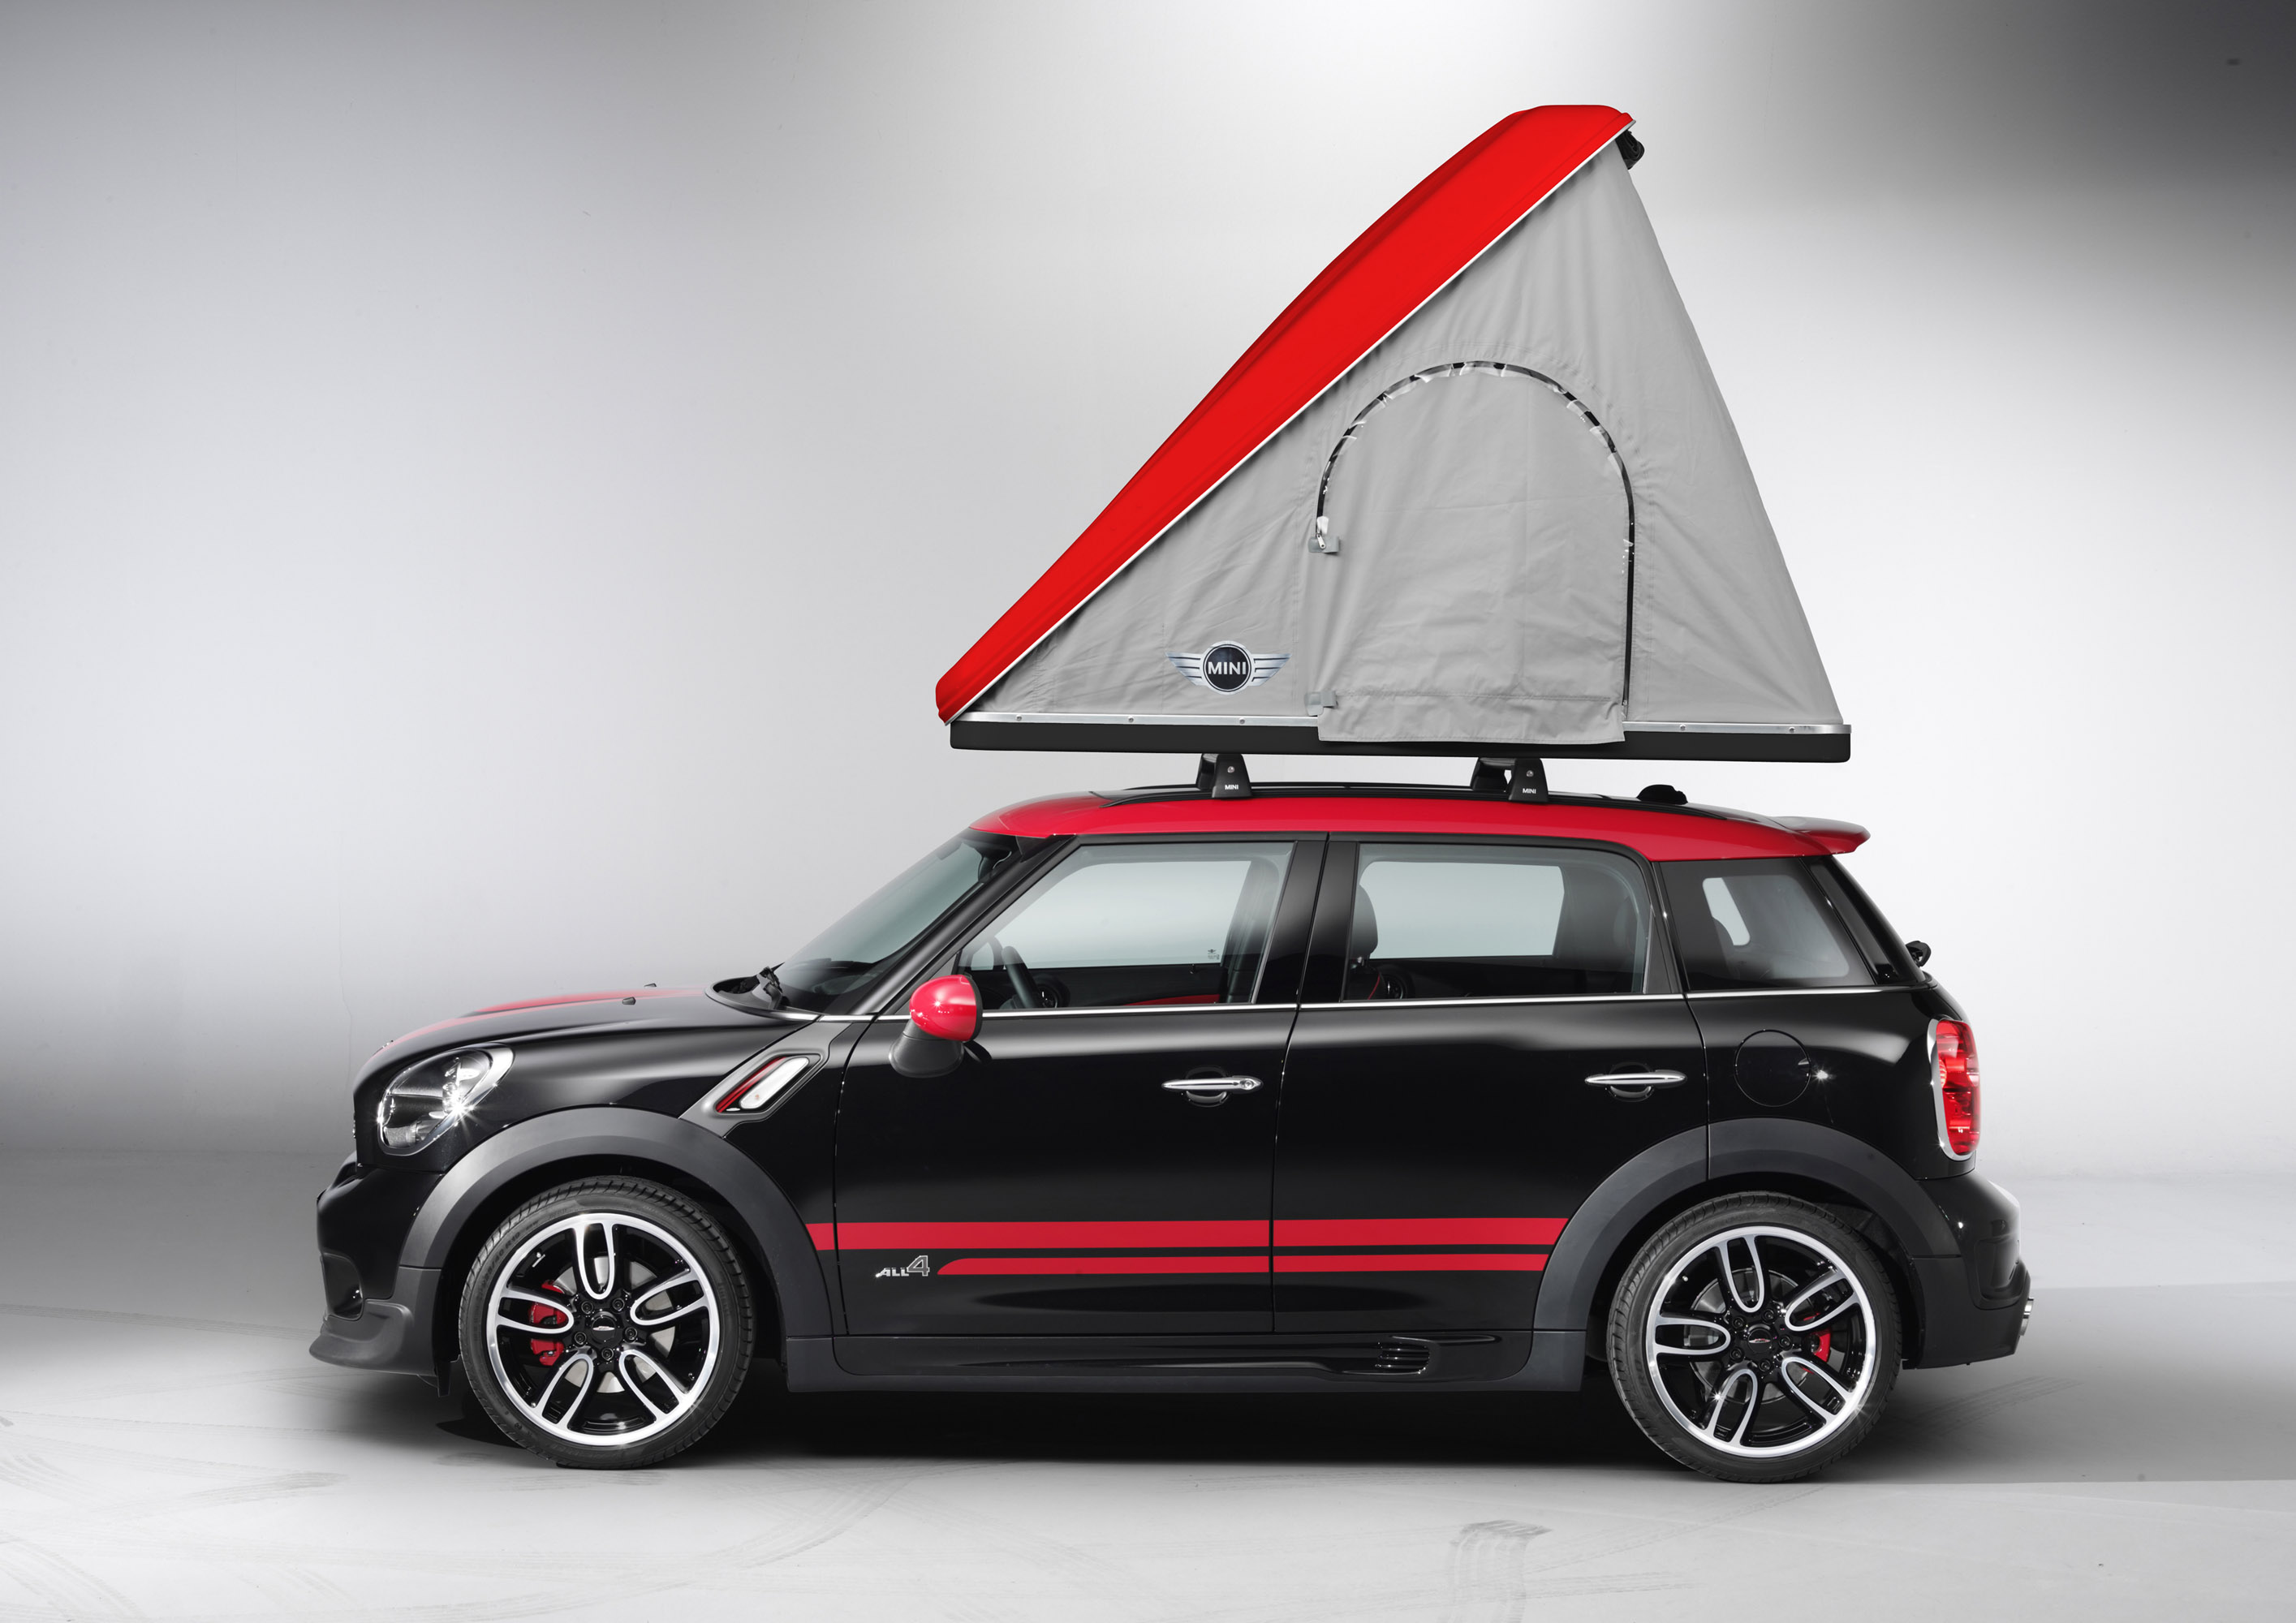 Mini Goes Camping With Mini Cowley Caravan And Mini